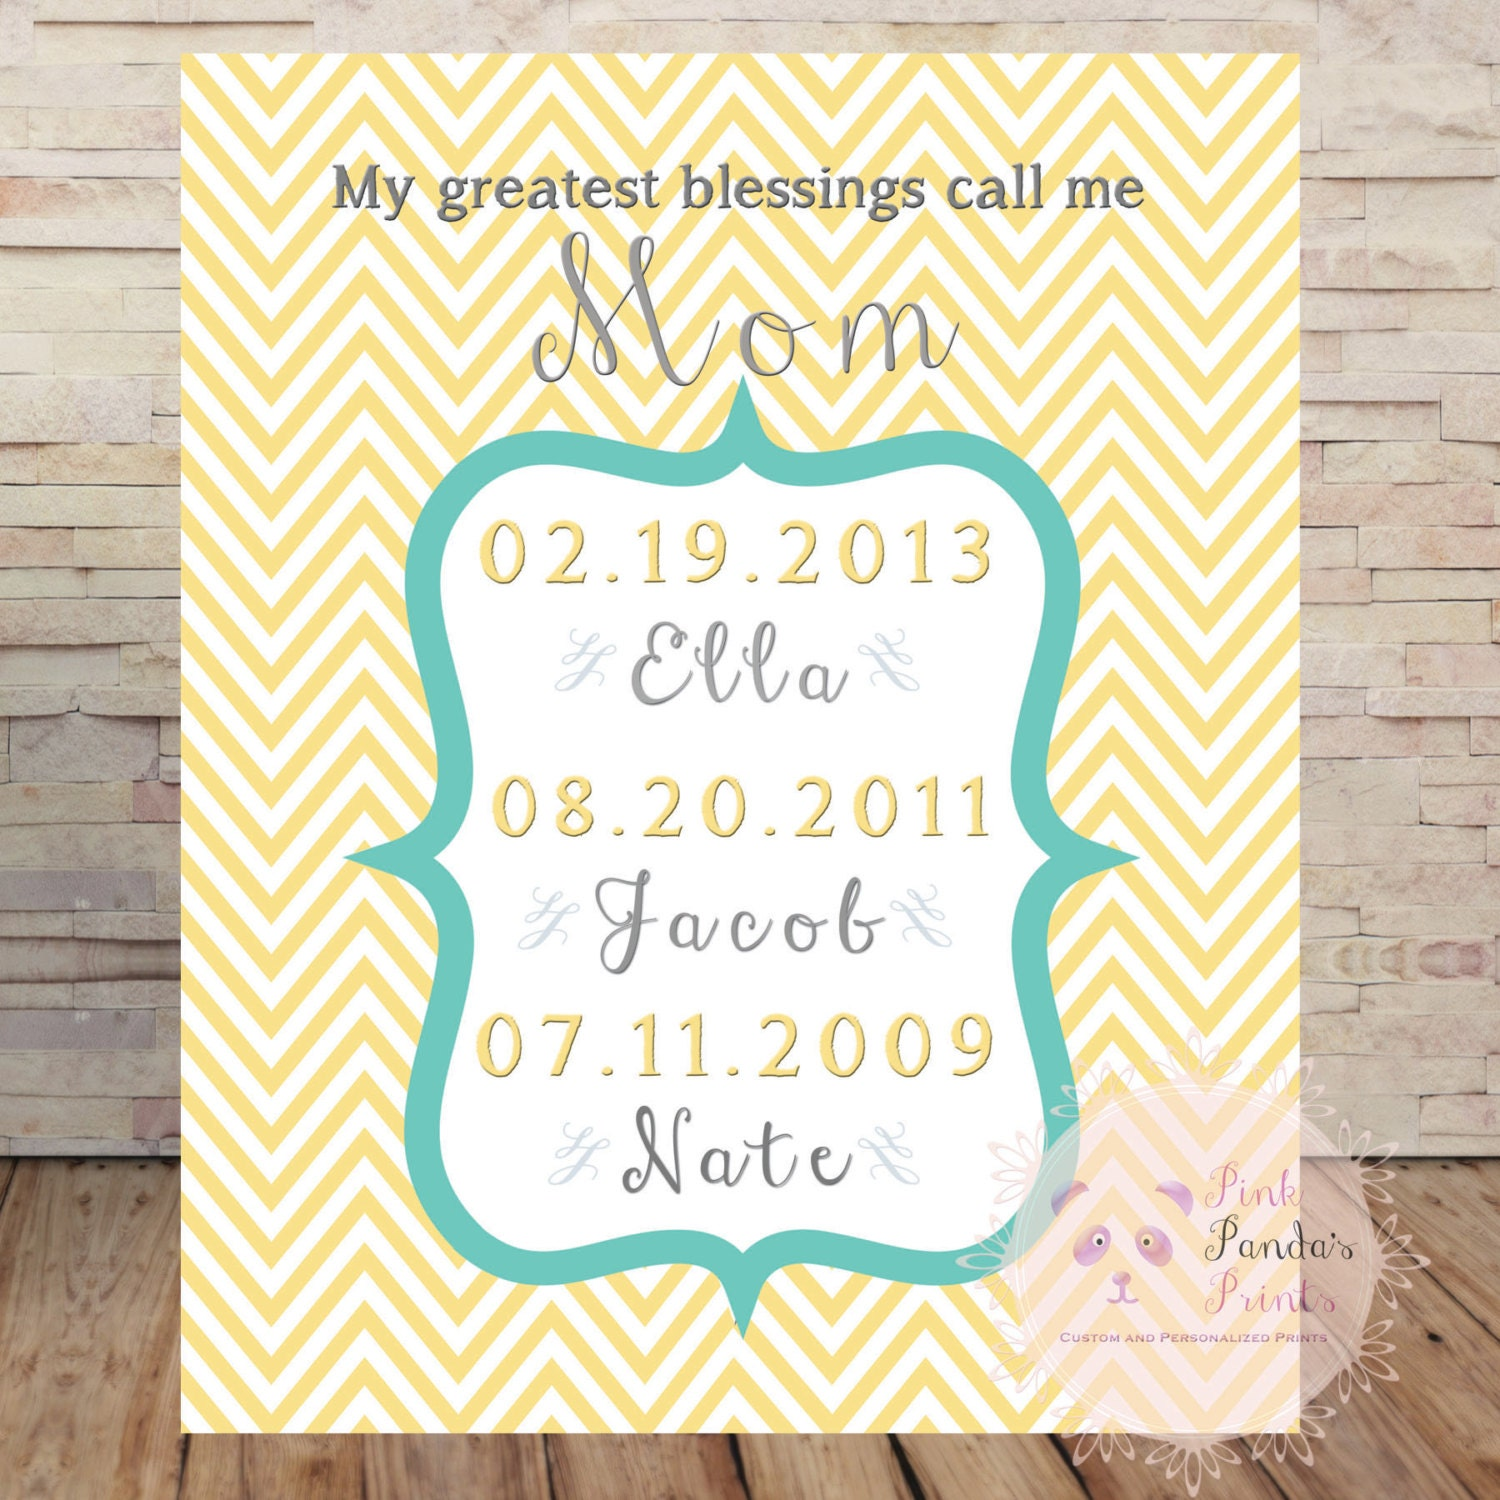 My greatest blessings call me mom personalized custom